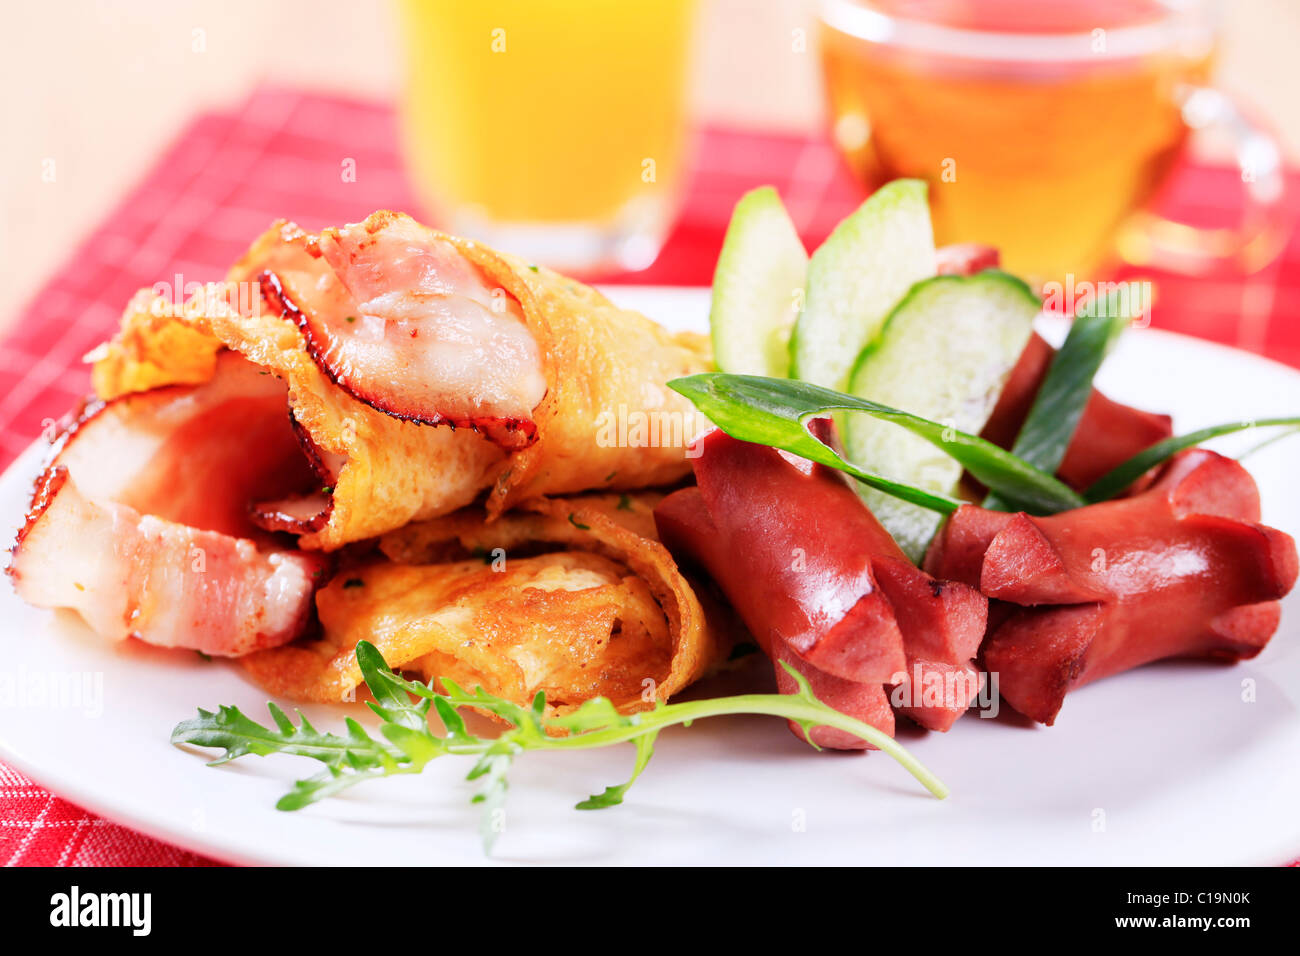 Fried egg omelet with bacon and sausages - Stock Image